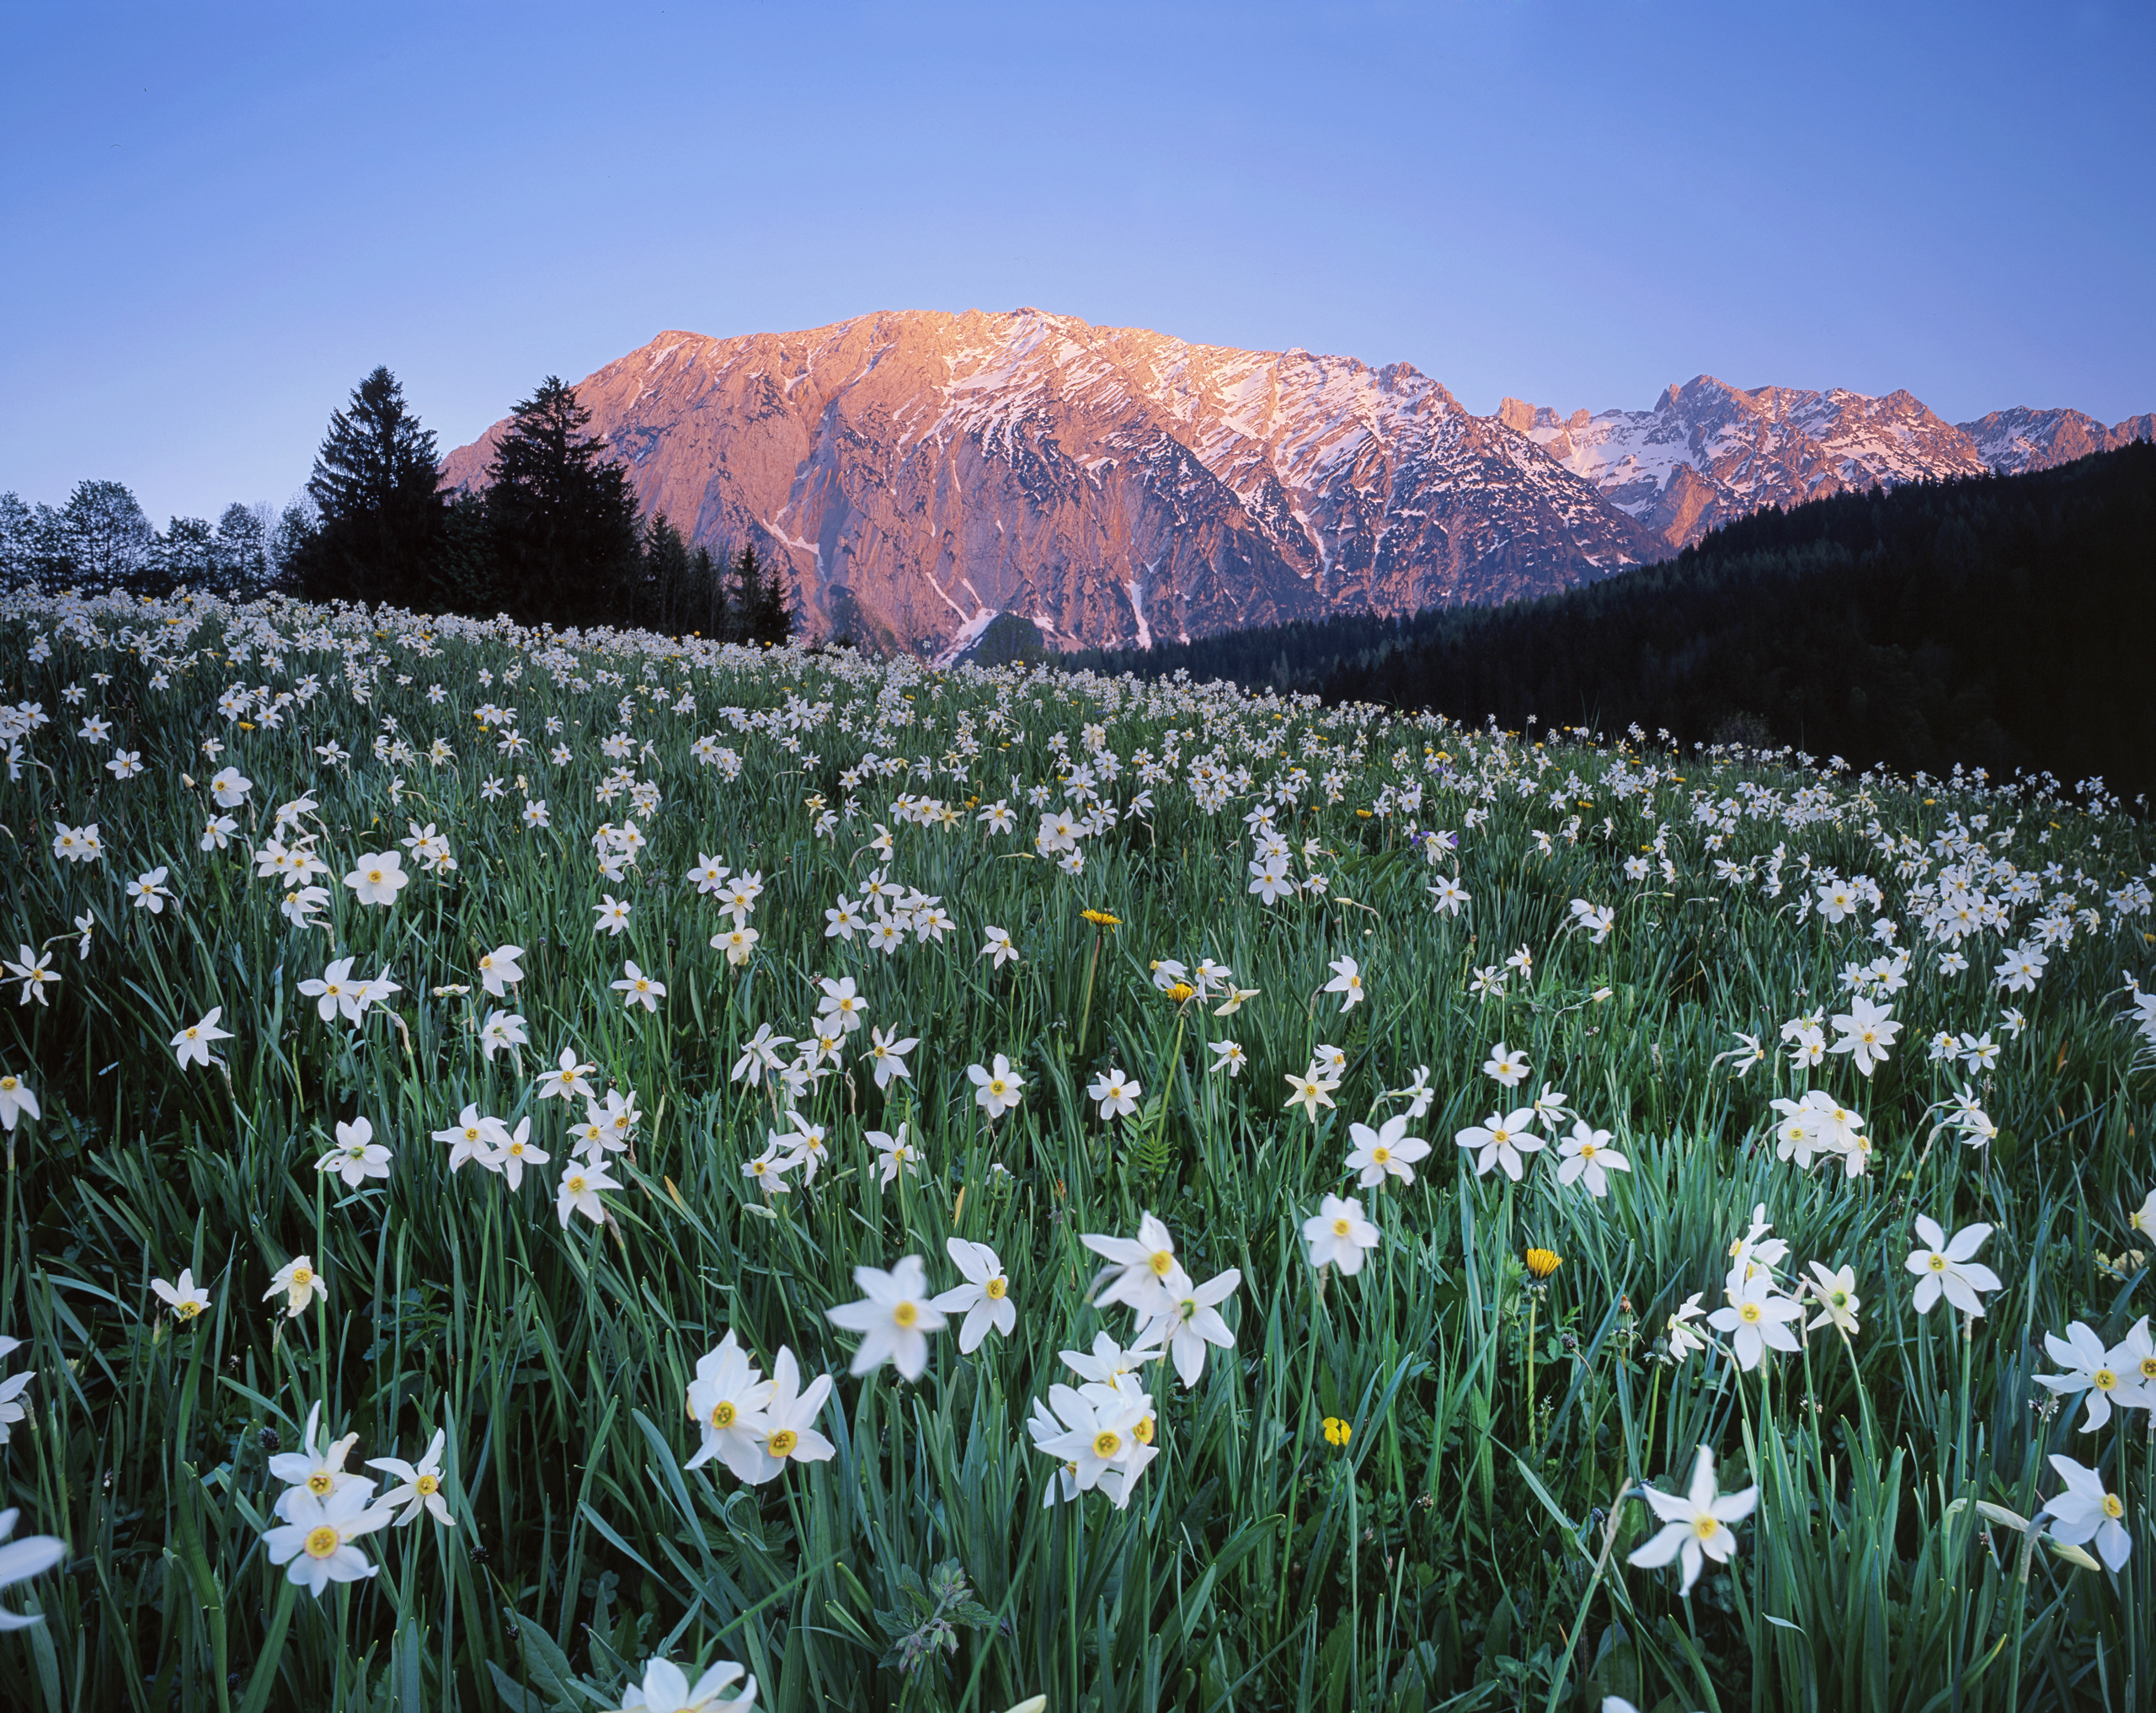 145827 download wallpaper Nature, Austria, Meadow, Field, Sky, Mountains, Flowers screensavers and pictures for free